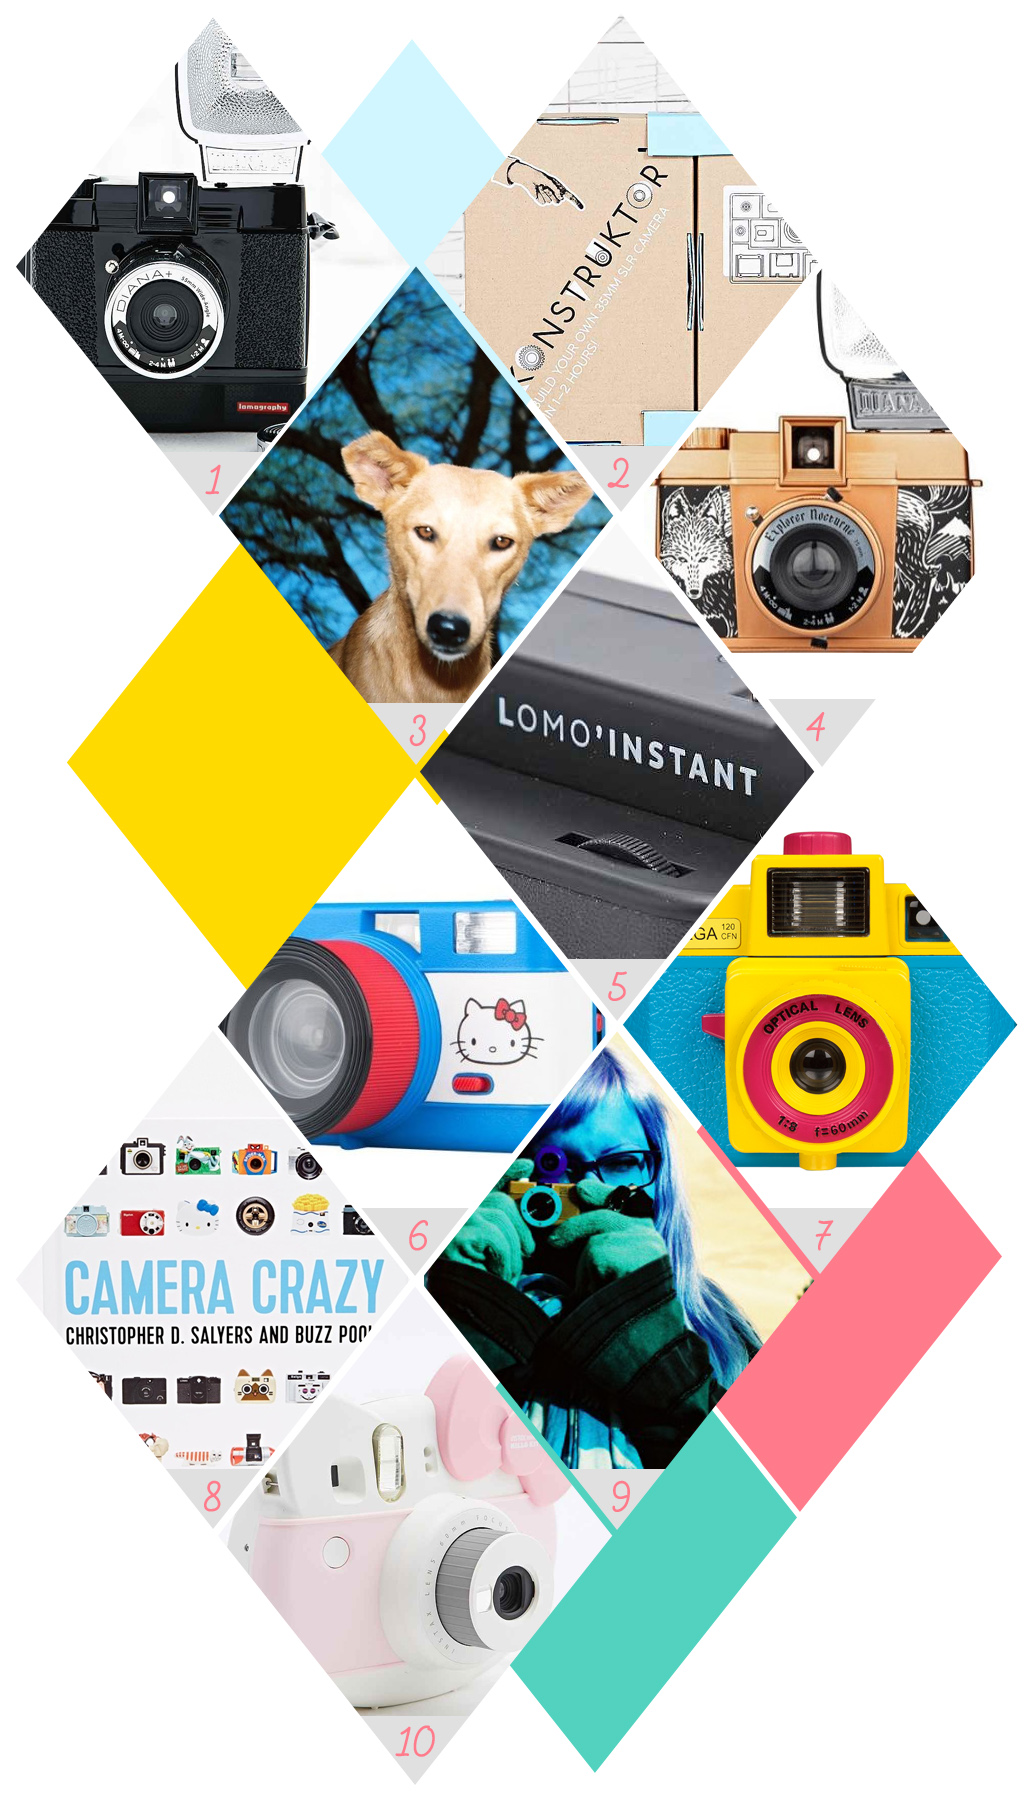 lomography-dreamlist appareil lomo wish list